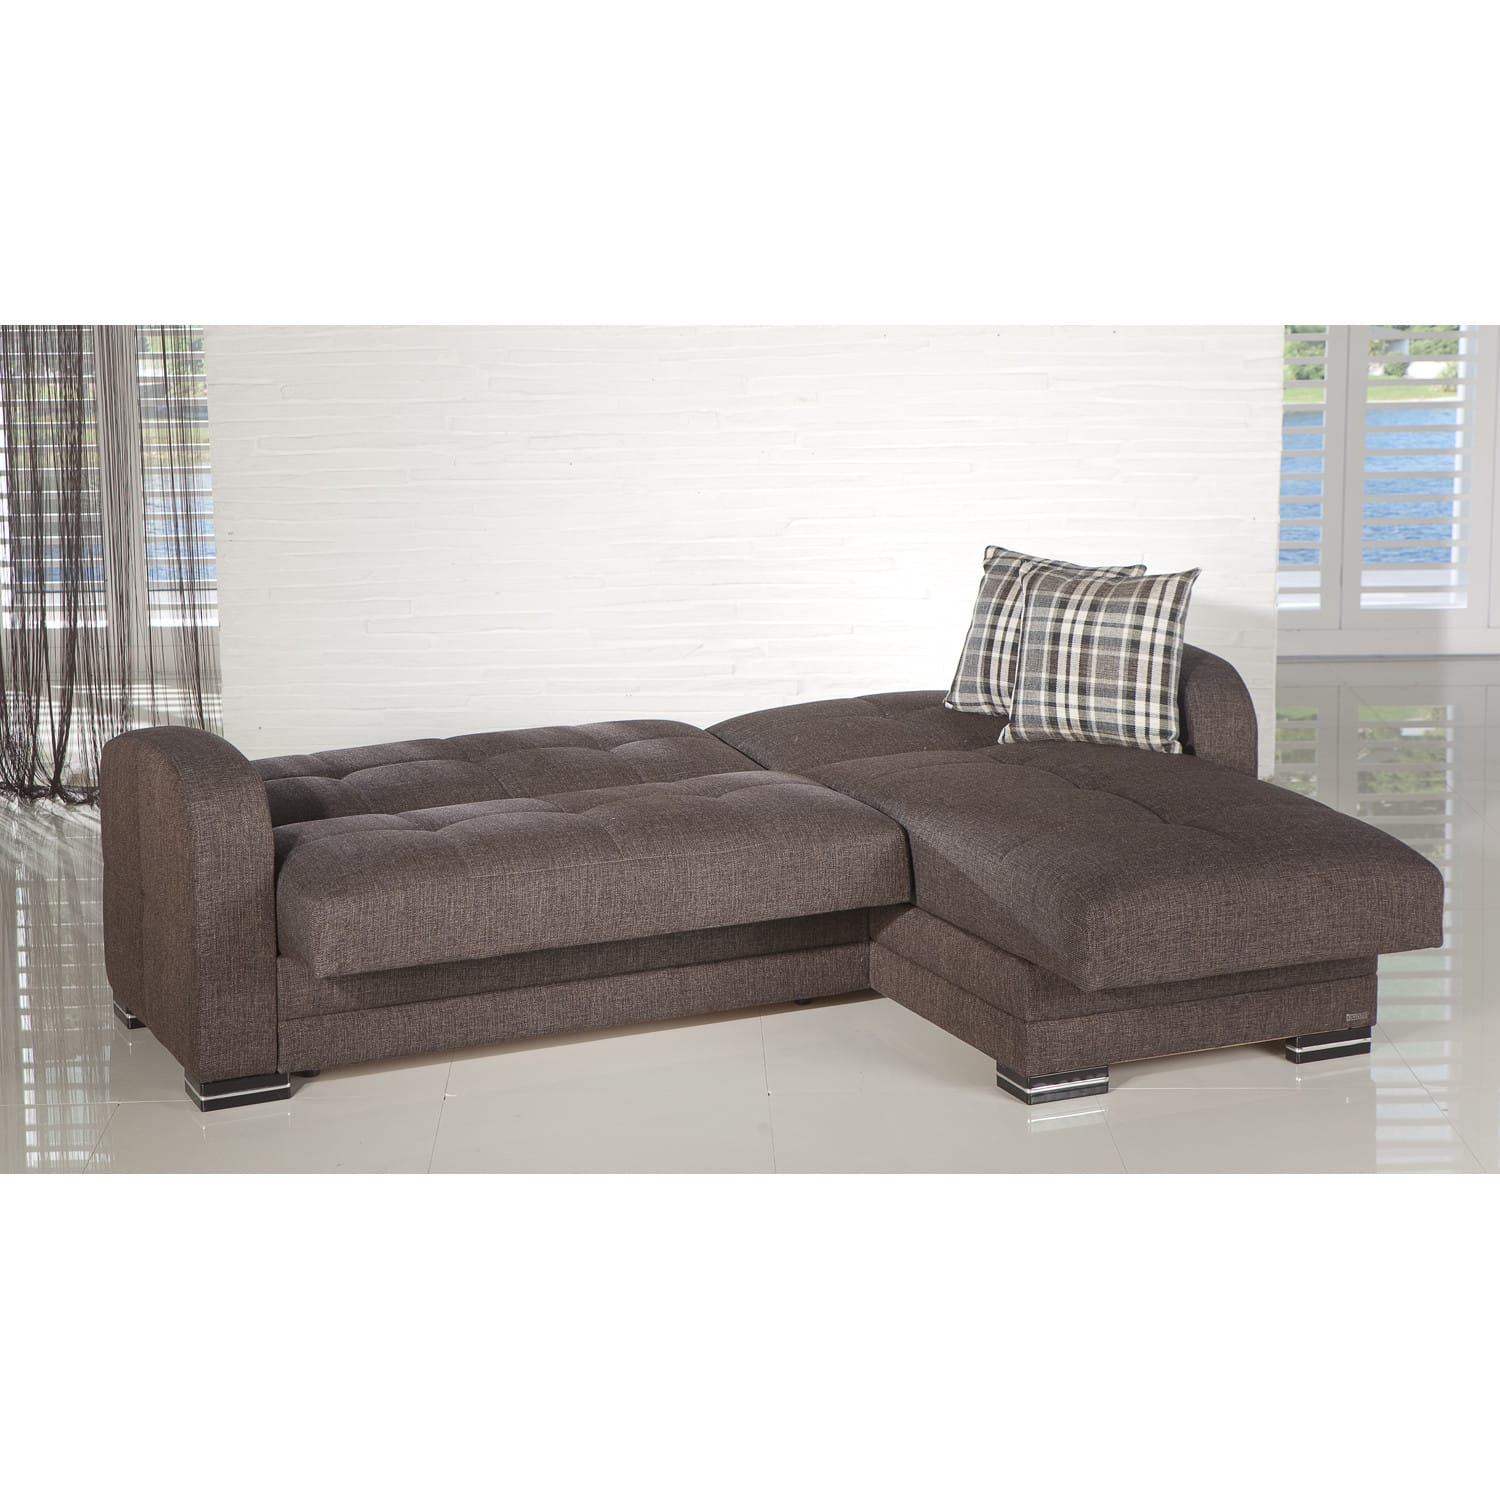 sc 1 st  Futonland : dark brown sectional sofa - Sectionals, Sofas & Couches